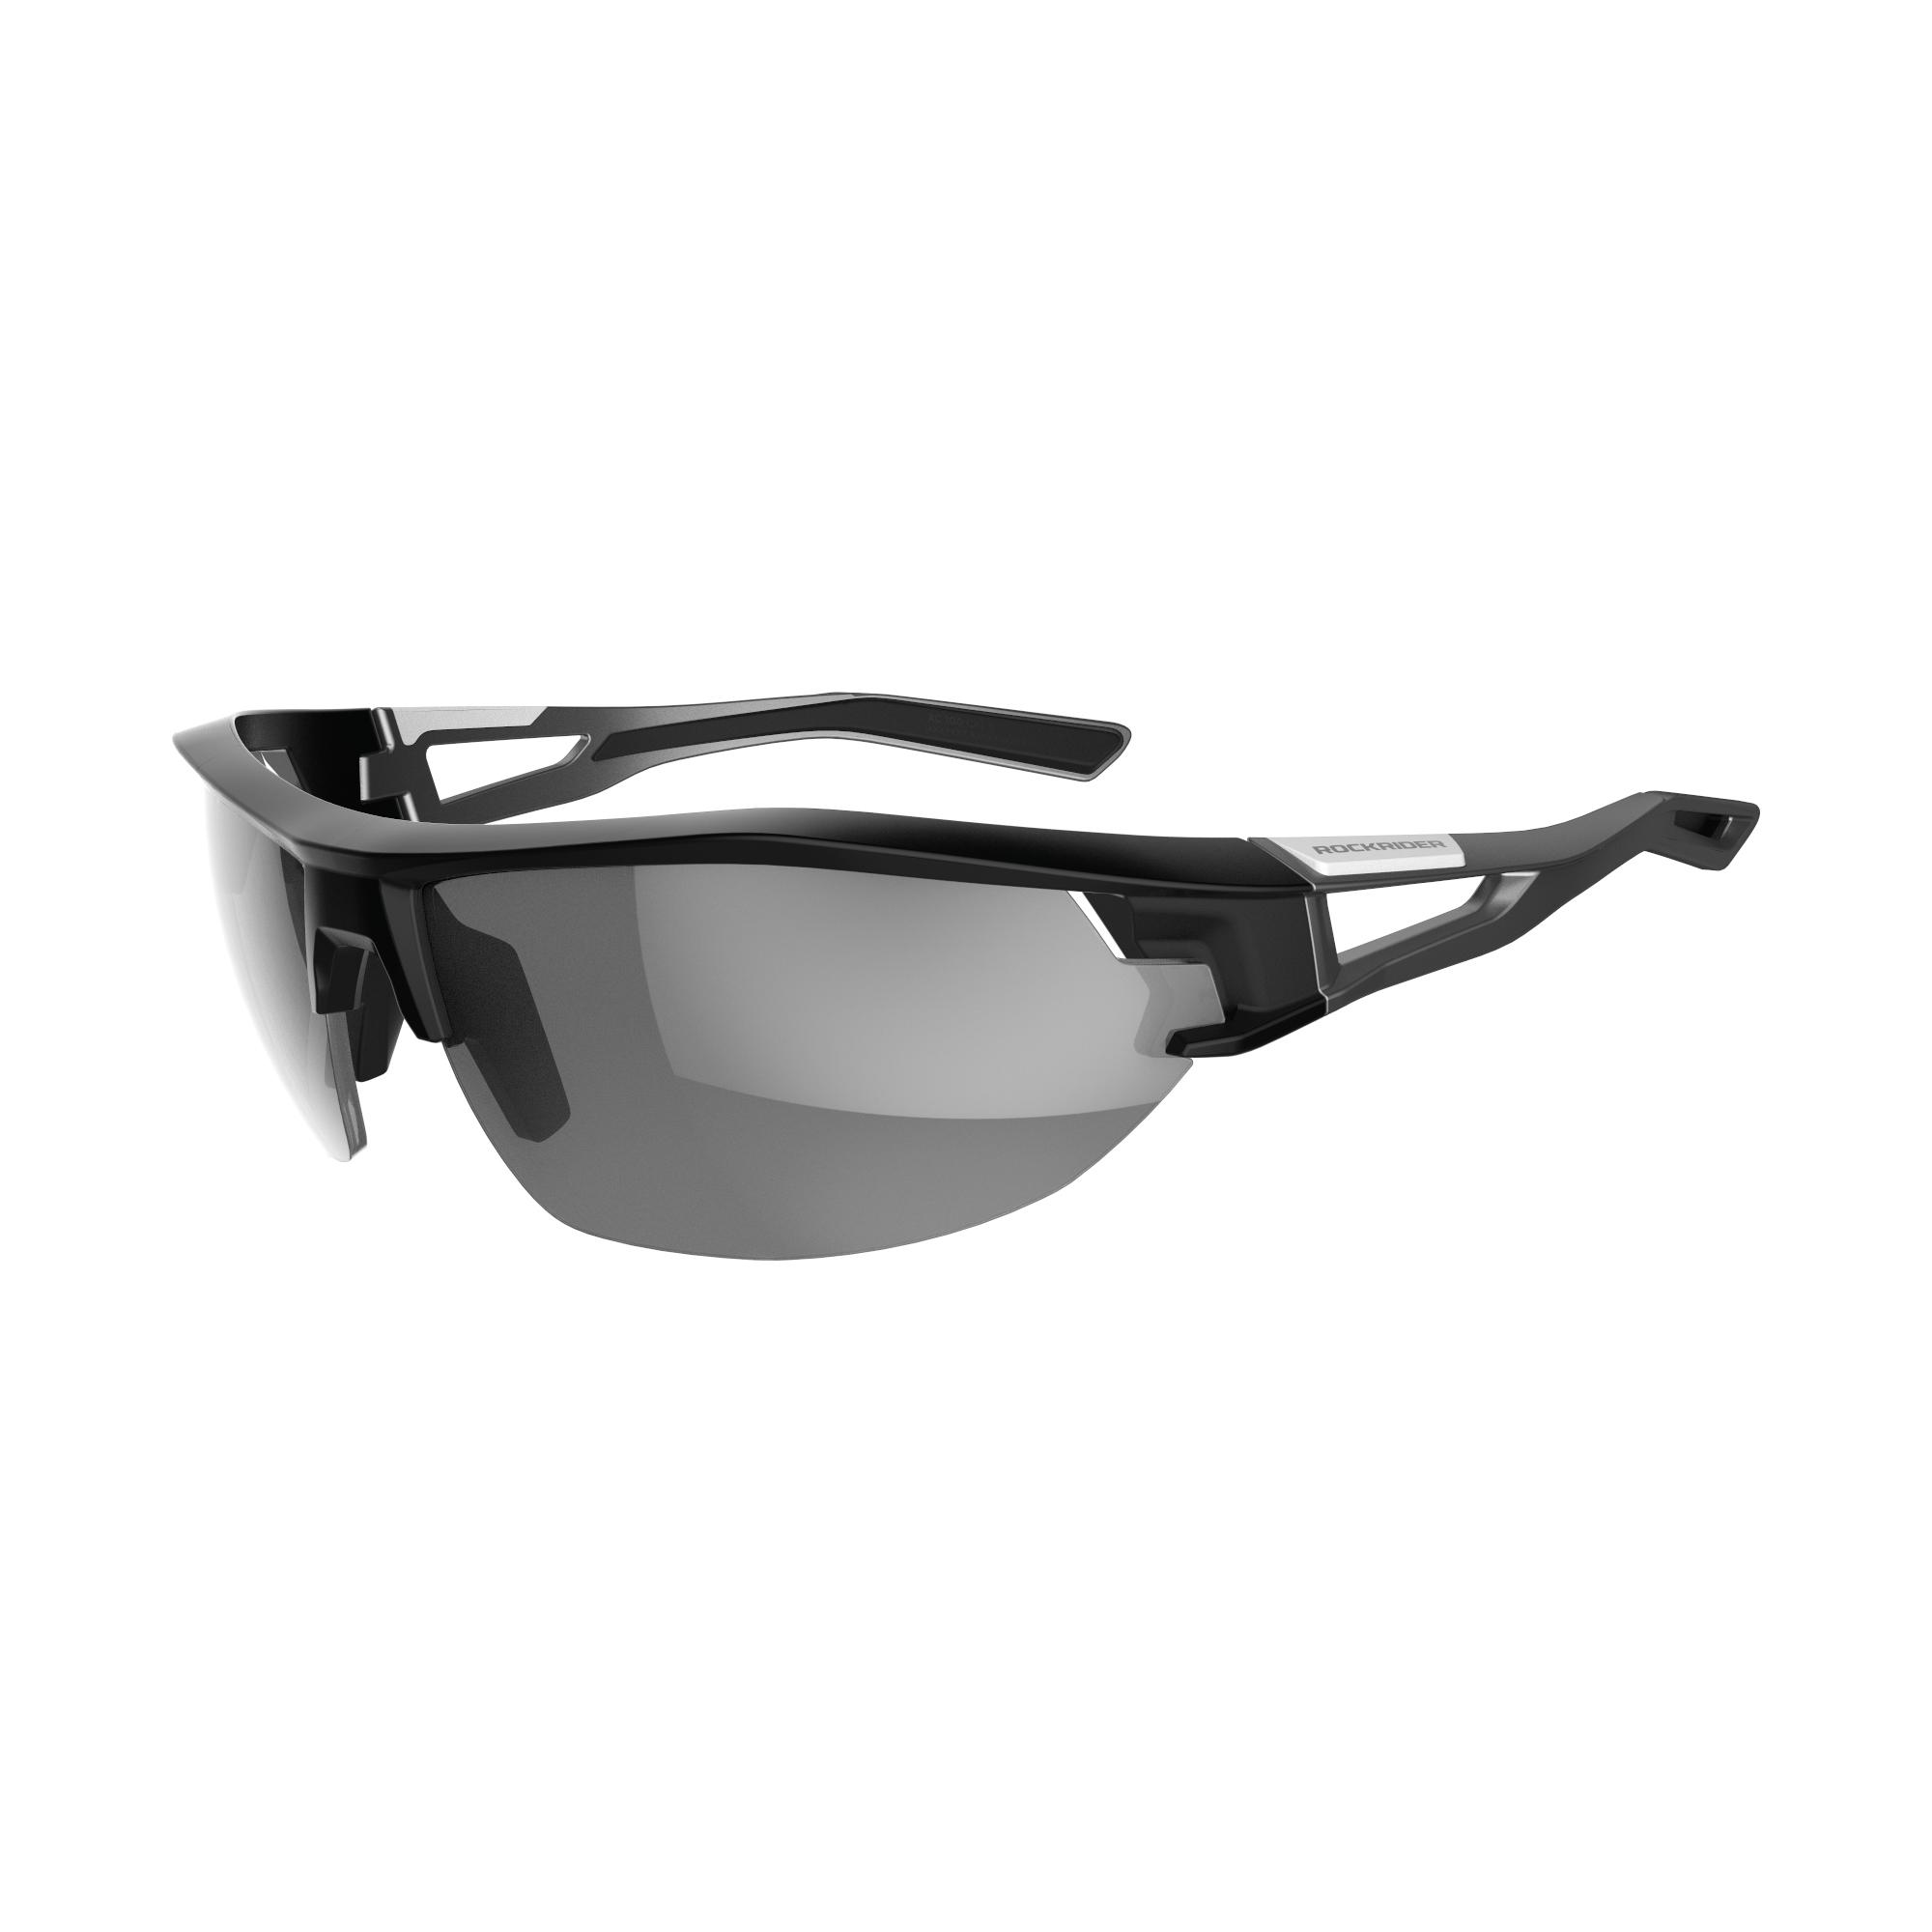 XC 100 Adult MTB Sunglasses...